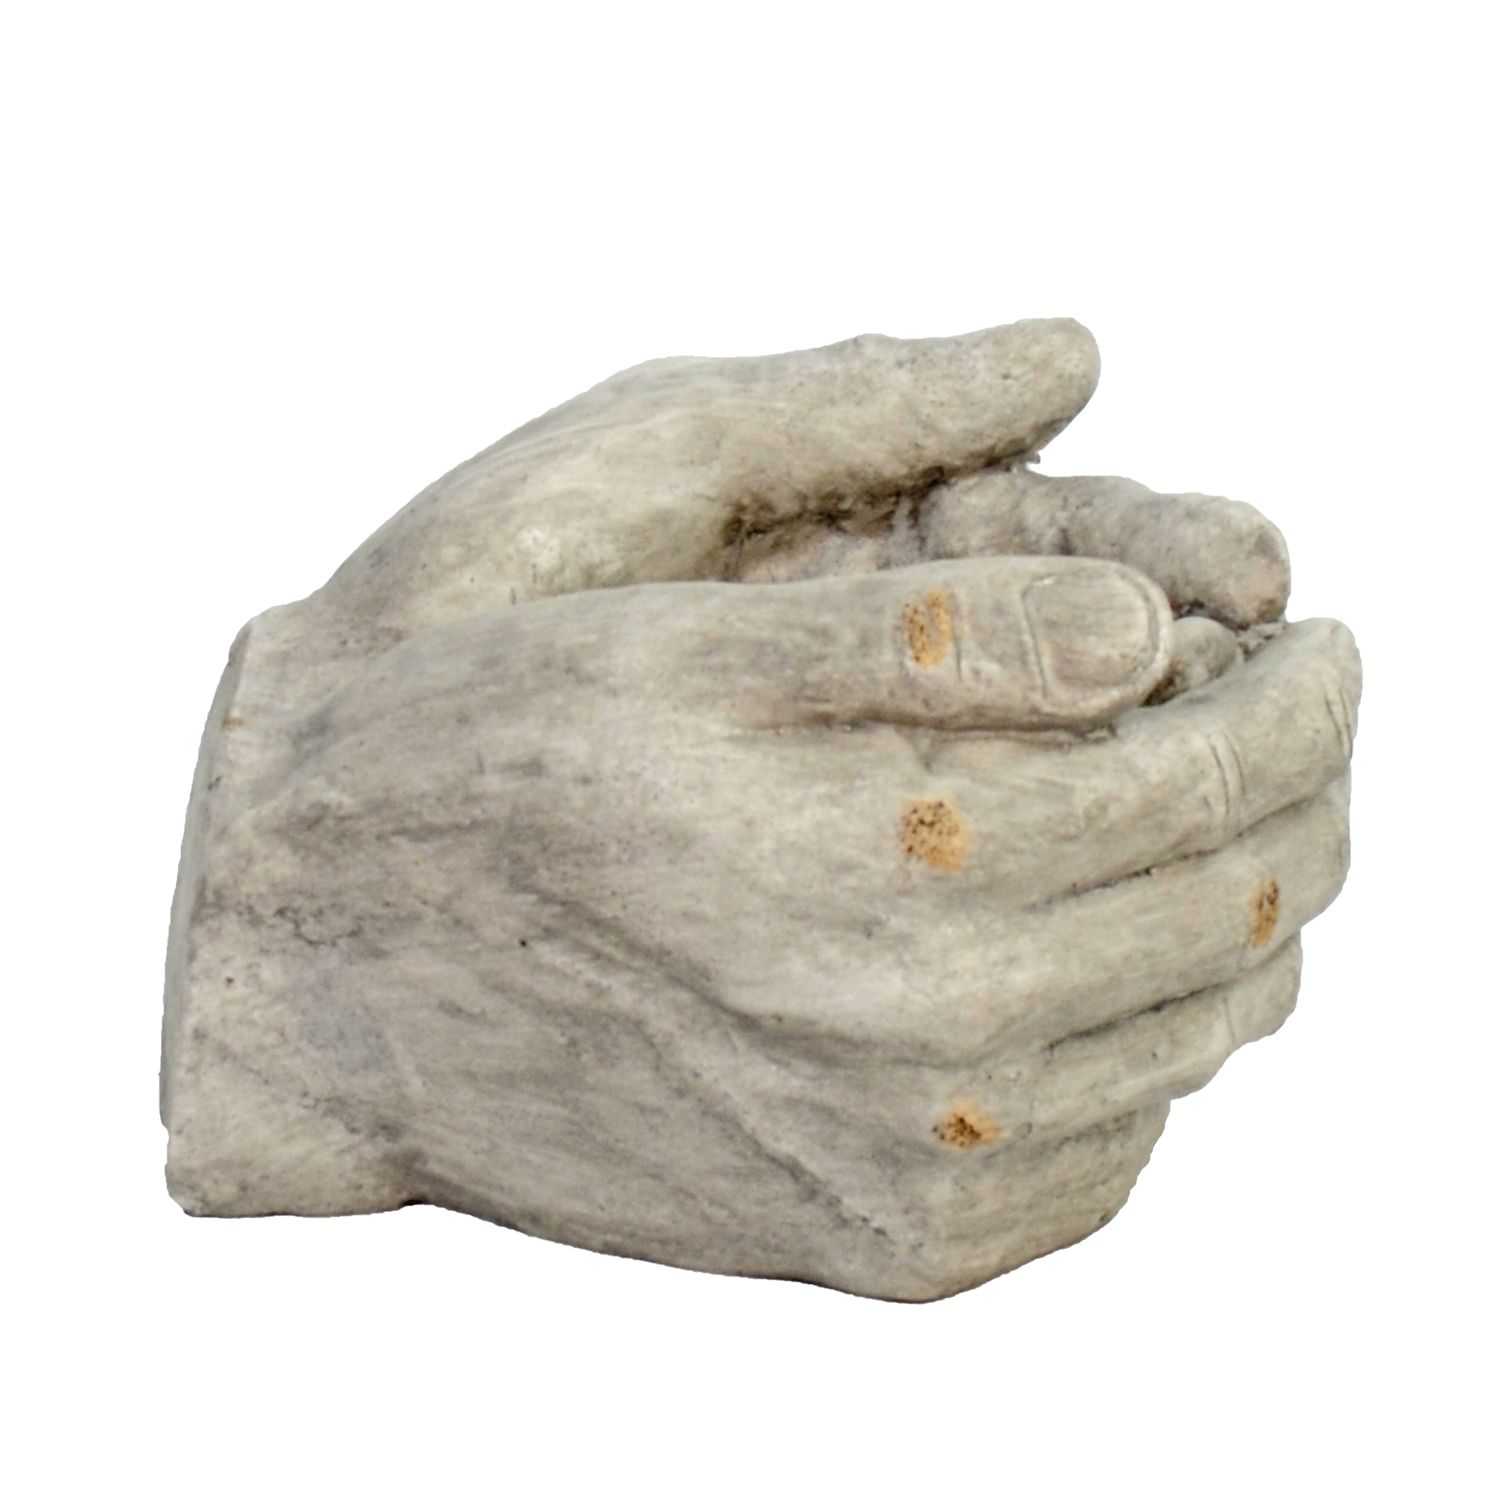 CUPPED HANDS PLANTER 19CM WEATHERED STONE EFFECT PROFILE WS4